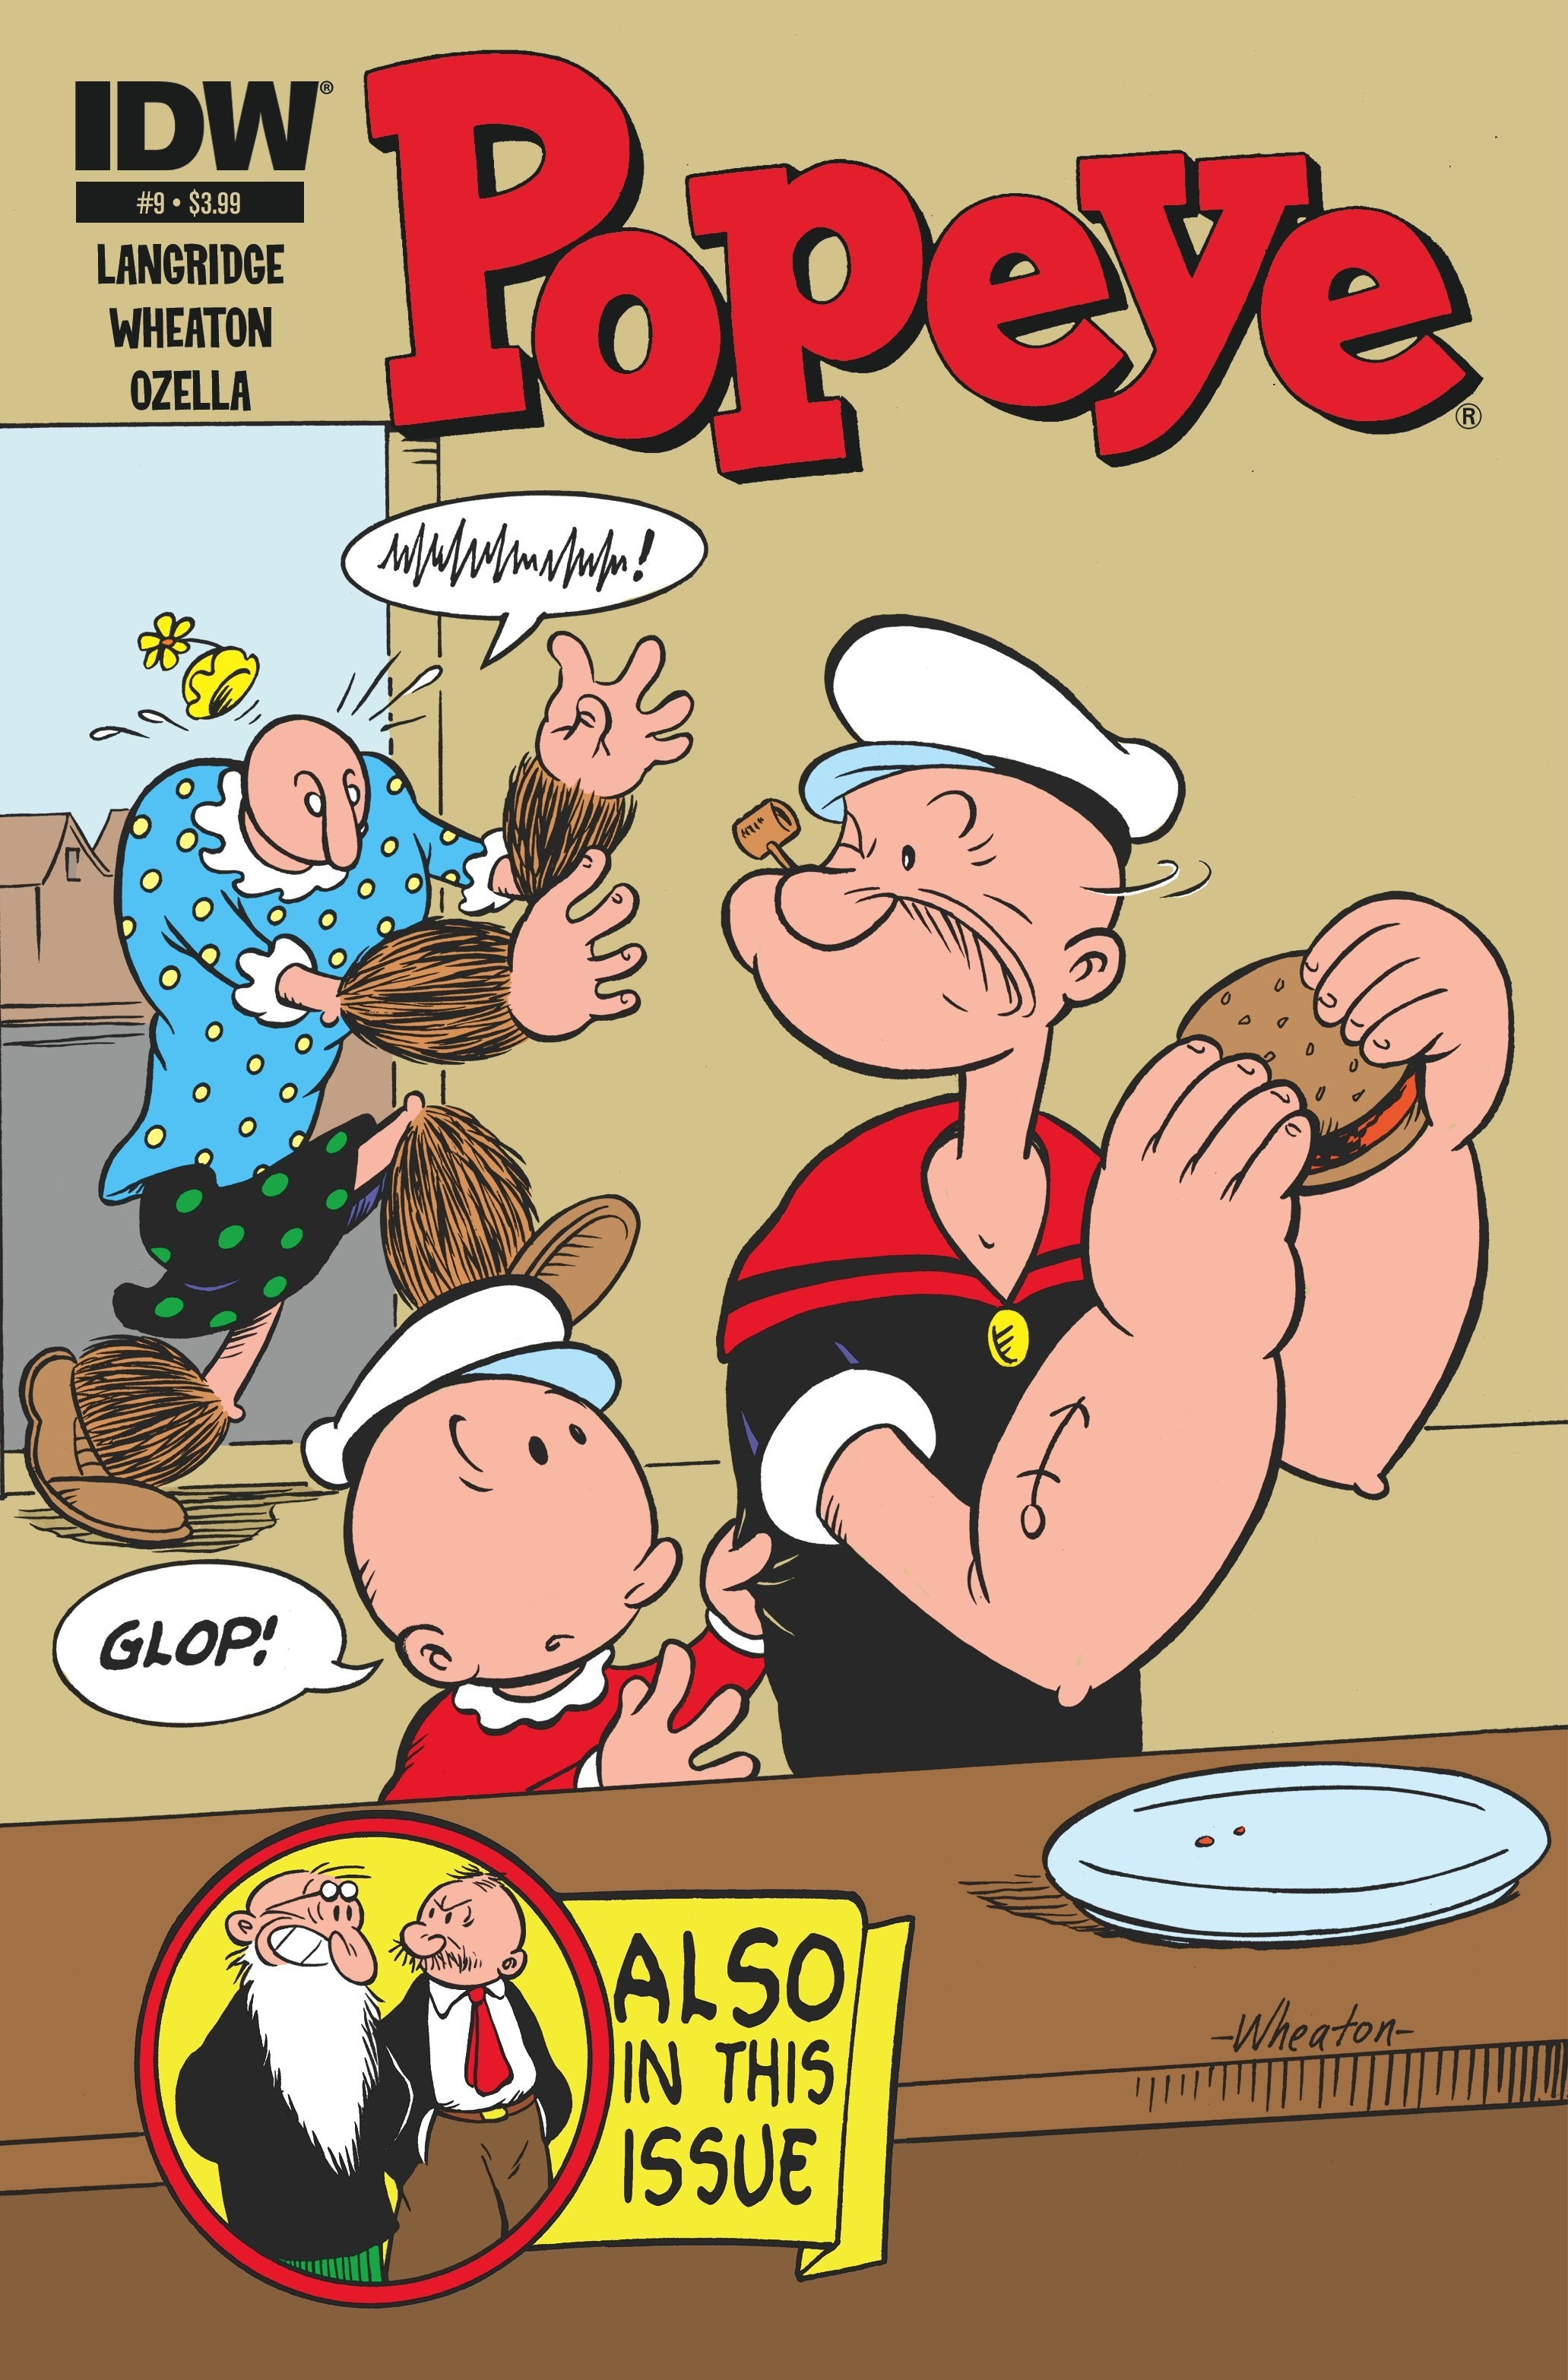 Pics Popeye Background For Free Image Wallpaper Download Â« Anime Cartoon  Wallpaper